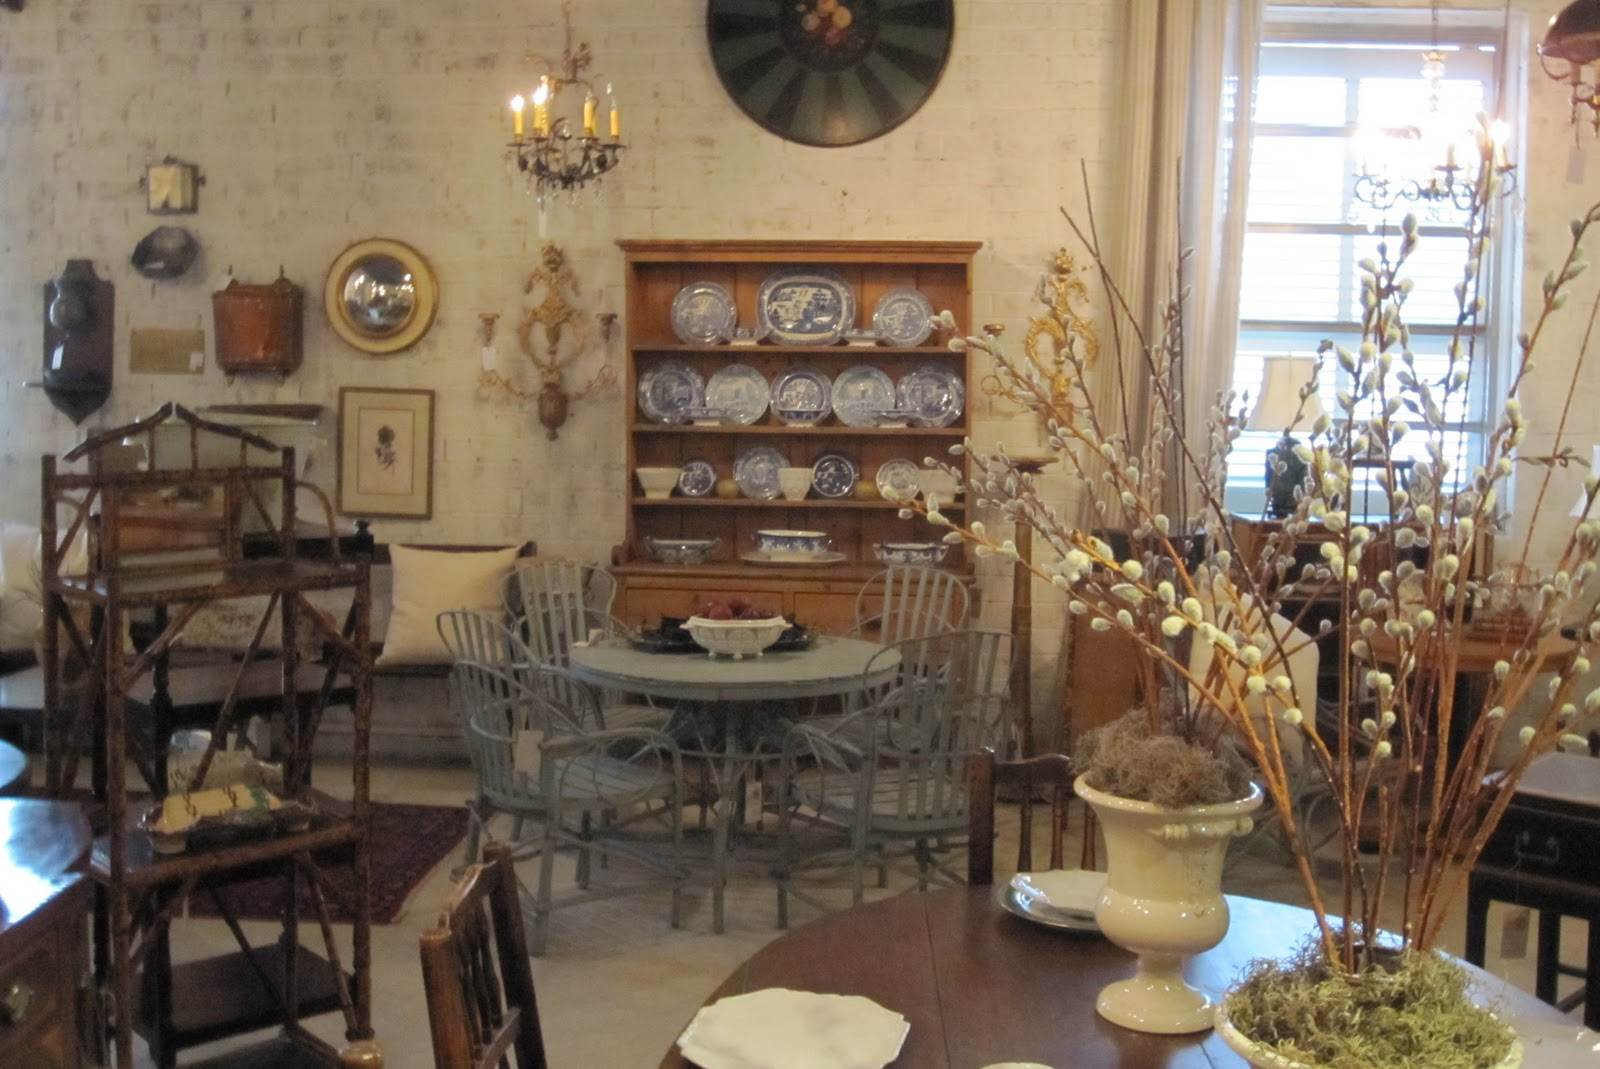 The Year Round Showroom In Greensboro Has Been A Go To Resource For Thirty  Years For Antique Dealers. Their Showroom In Market Square Is Worthy Of  Your ...